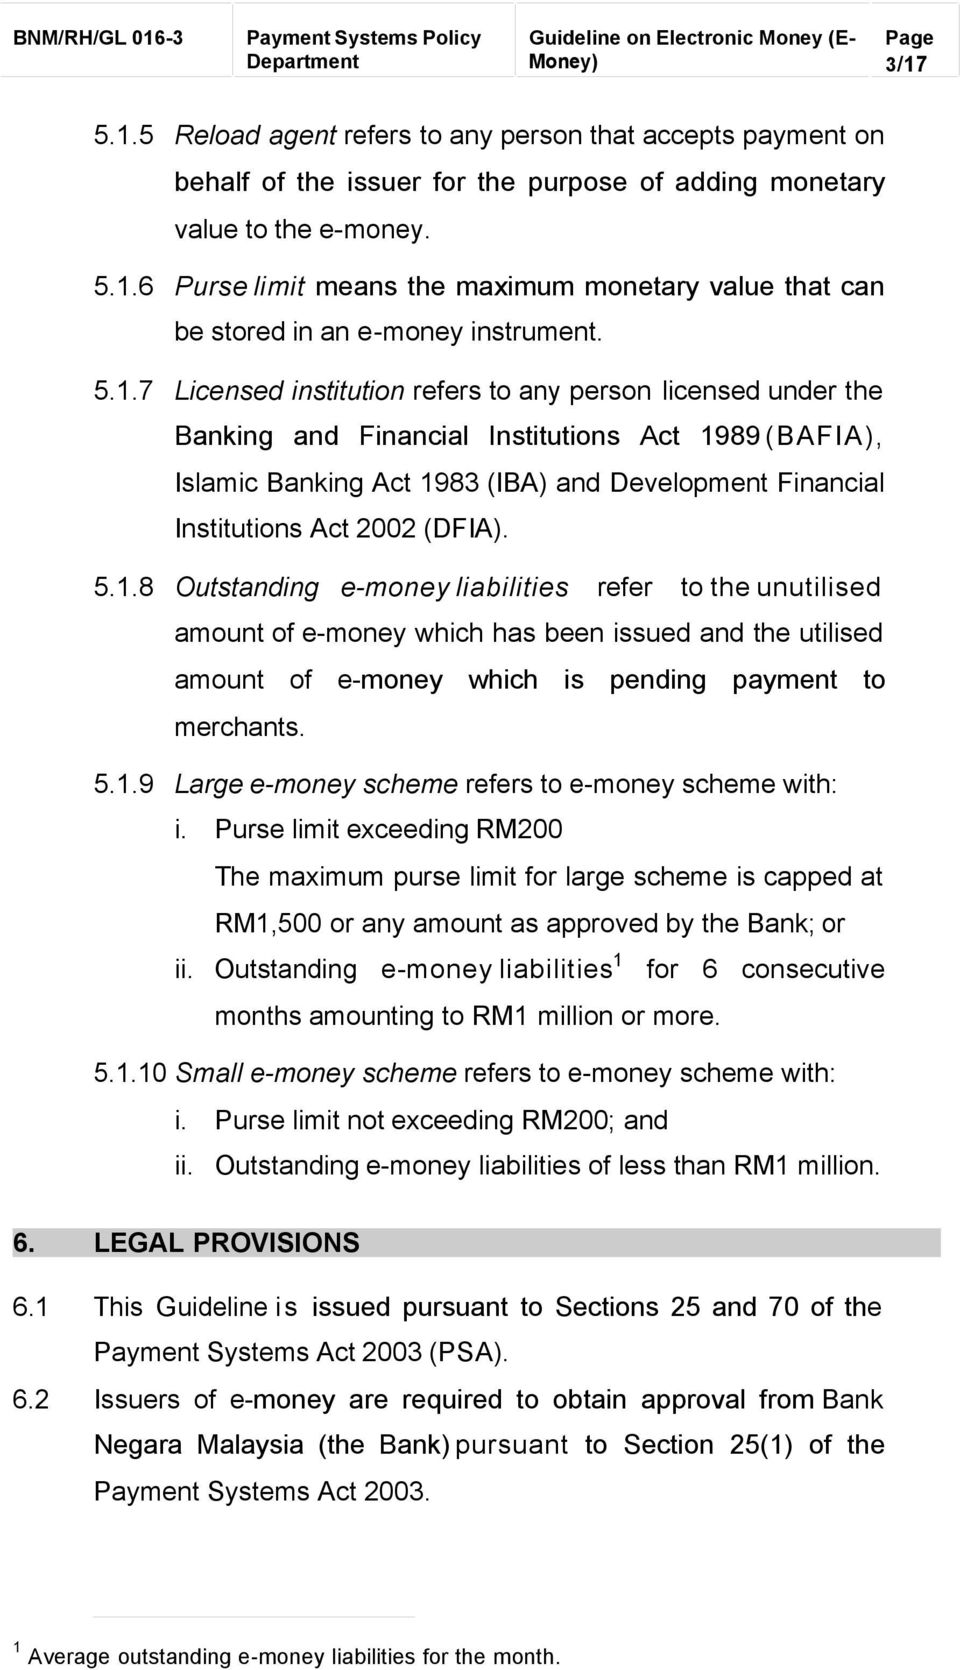 (DFIA). 5.1.8 Outstanding e-money liabilities refer to the unutilised amount of e-money which has been issued and the utilised amount of e-money which is pending payment to merchants. 5.1.9 Large e-money scheme refers to e-money scheme with: i.